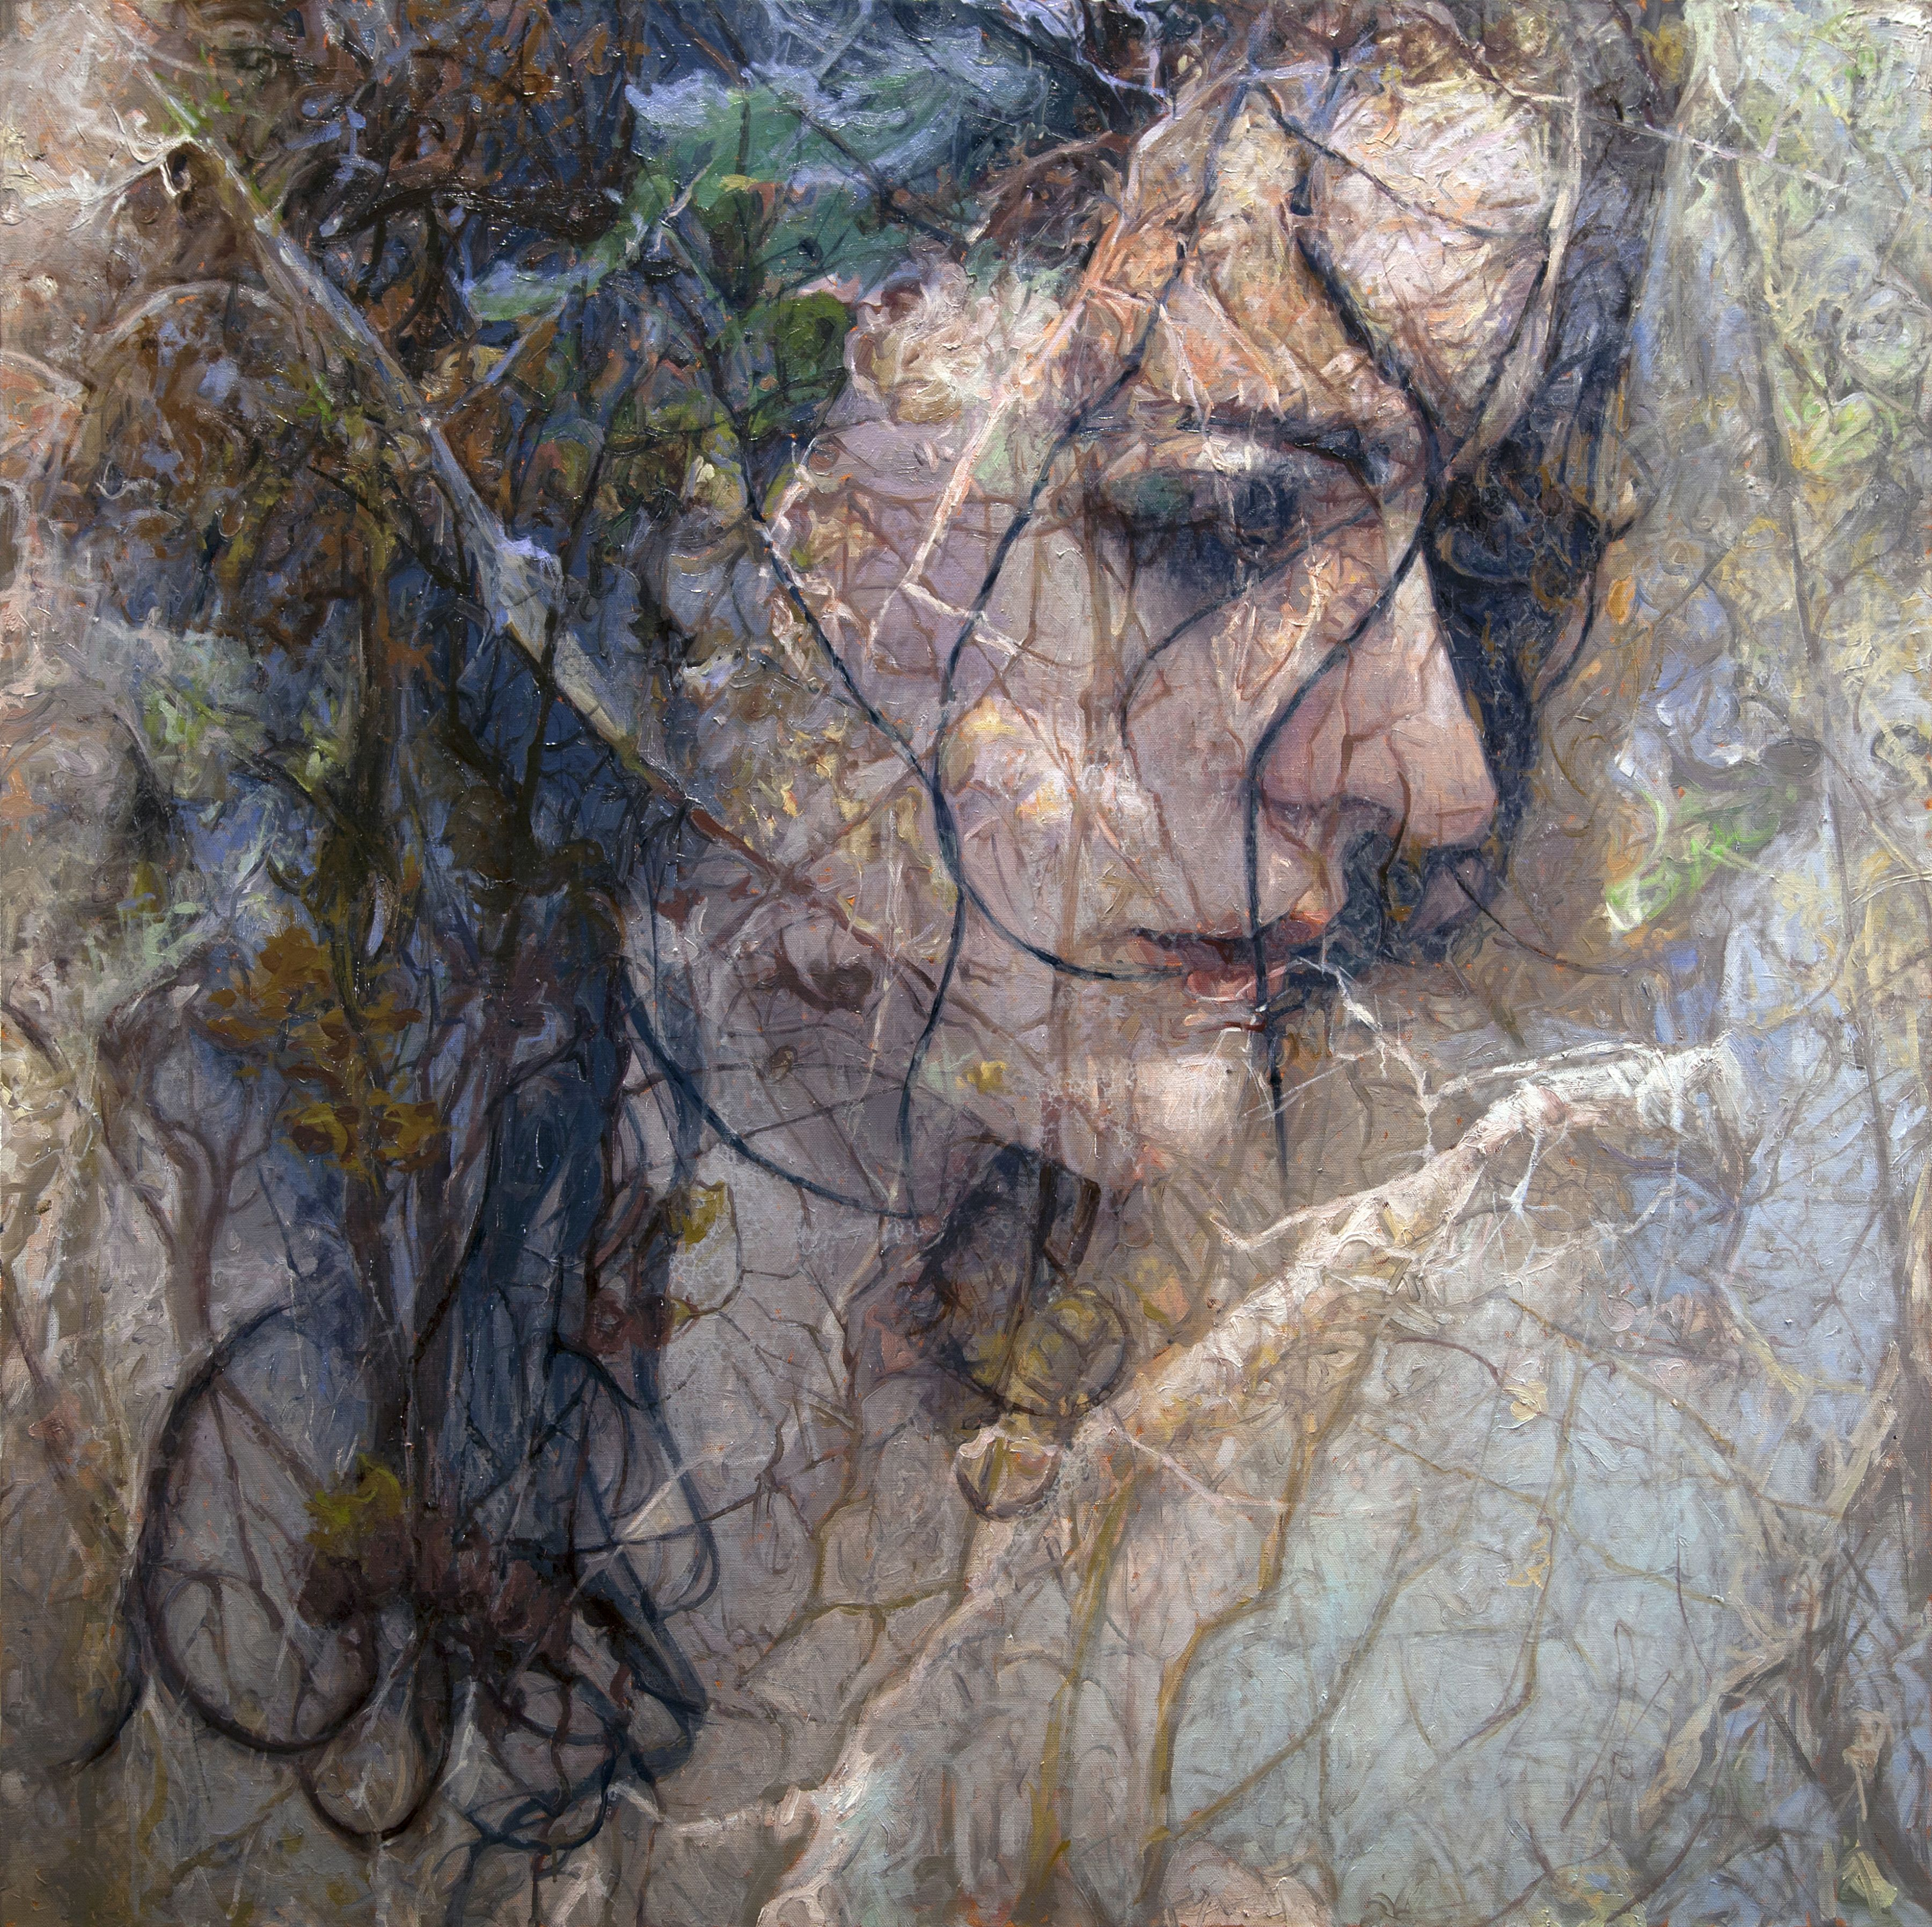 alyssa monks, Absorb (SOLD), 2015, oil on linen, 56 x 56 inches